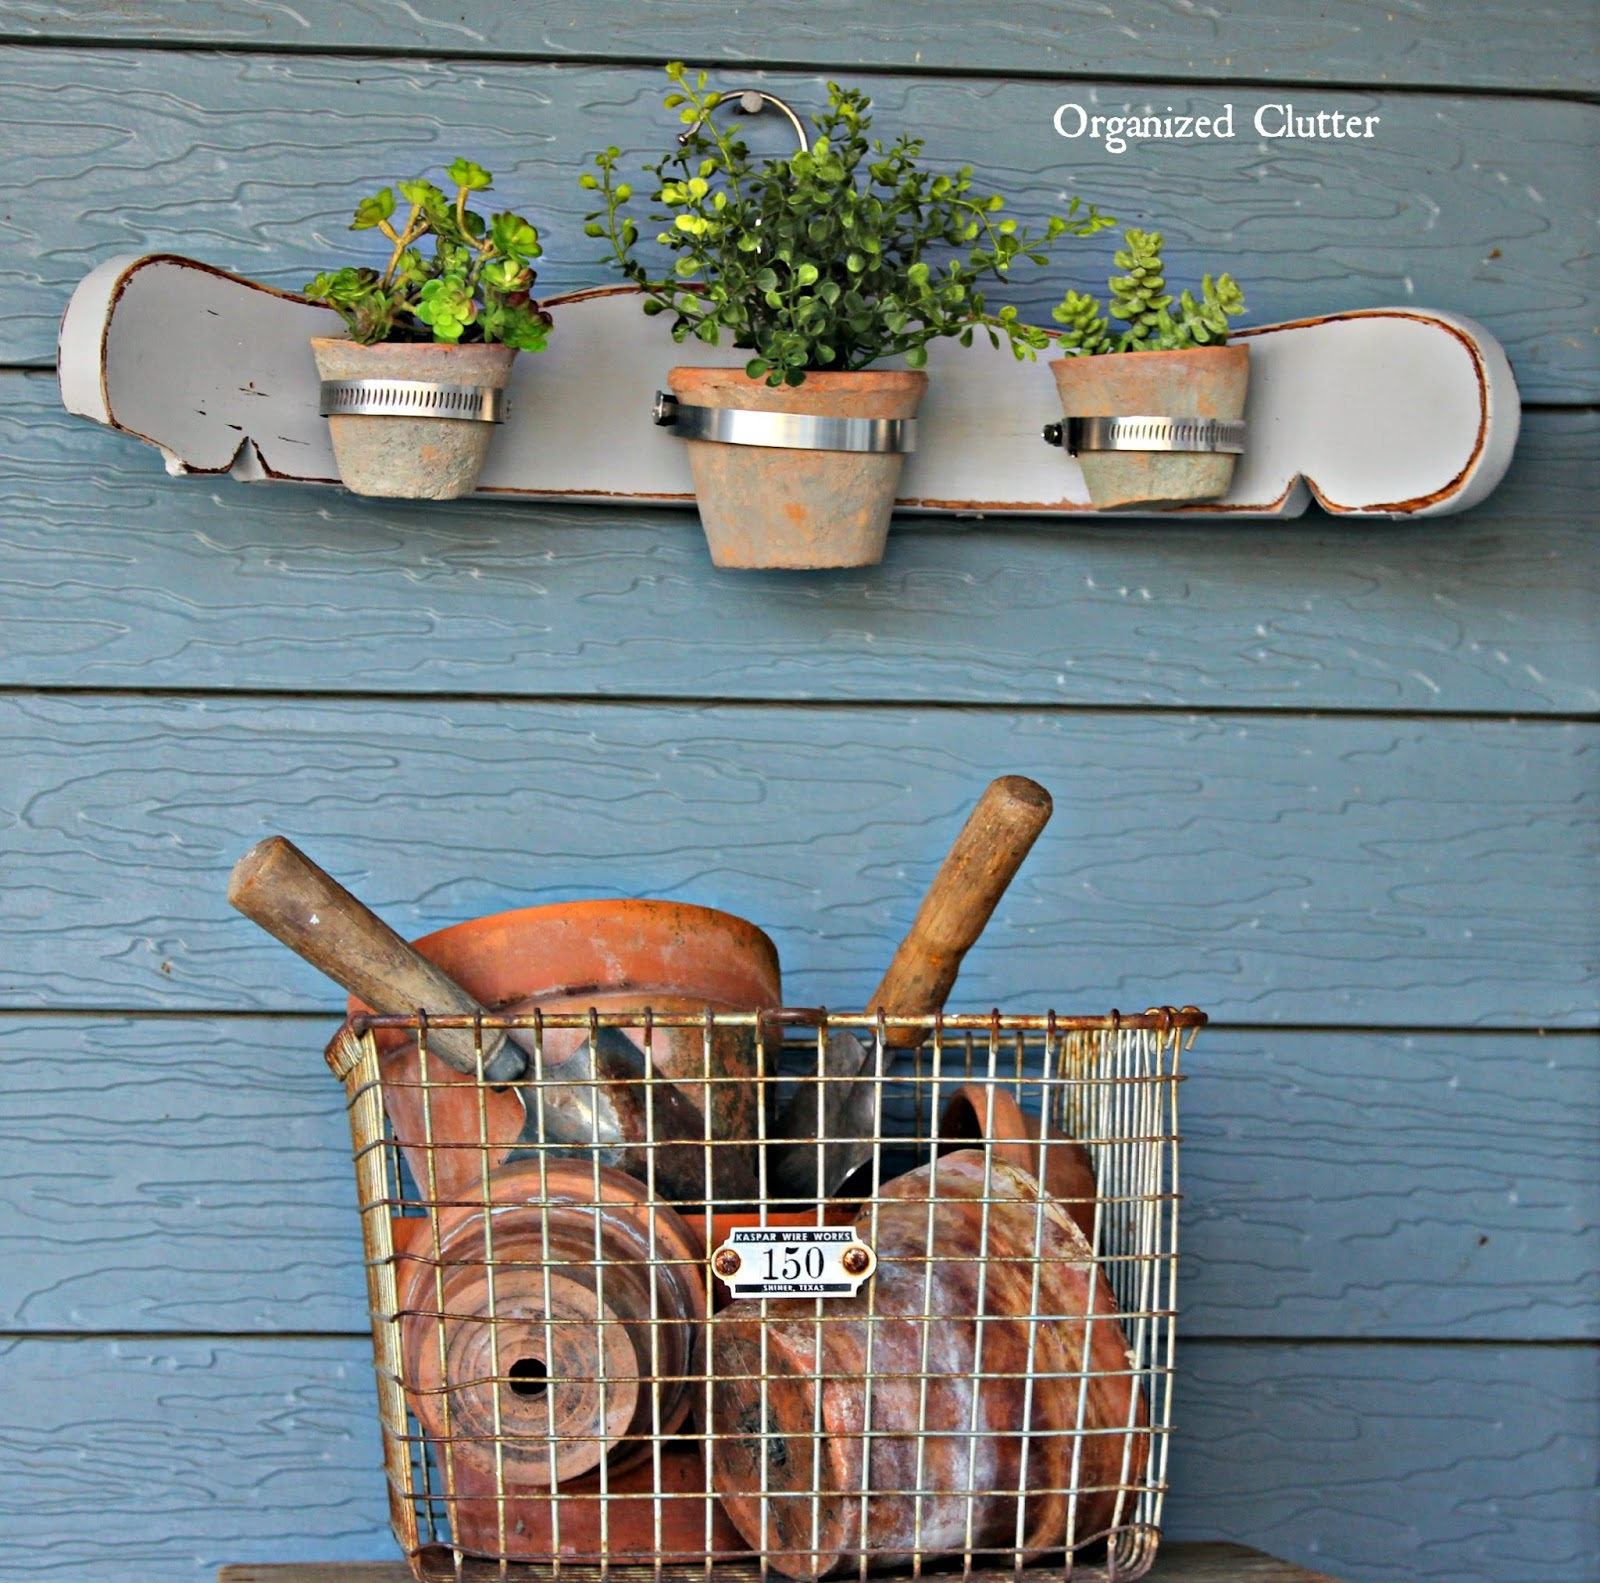 wheelchair with pot cosco step stool chair replacement parts re purposed back flowerpot holder organized clutter